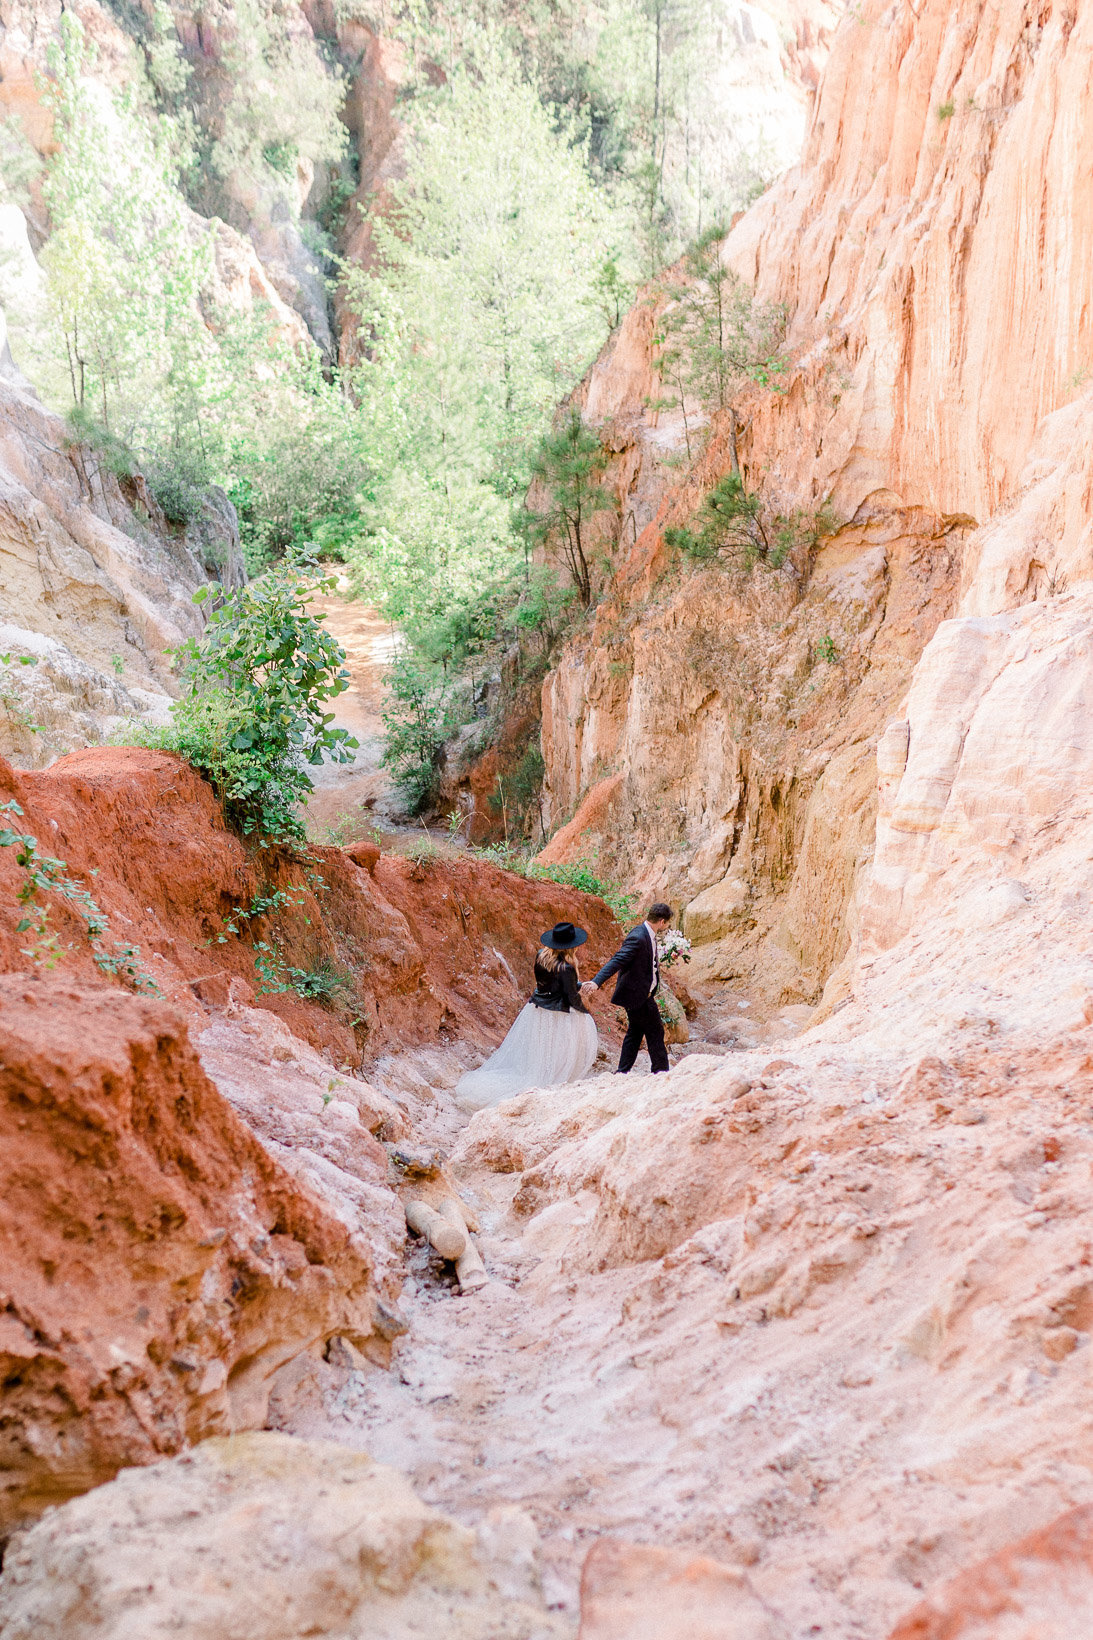 providence-canyon-wedding-elopement-adventure-hiking-georgia-arizona-21